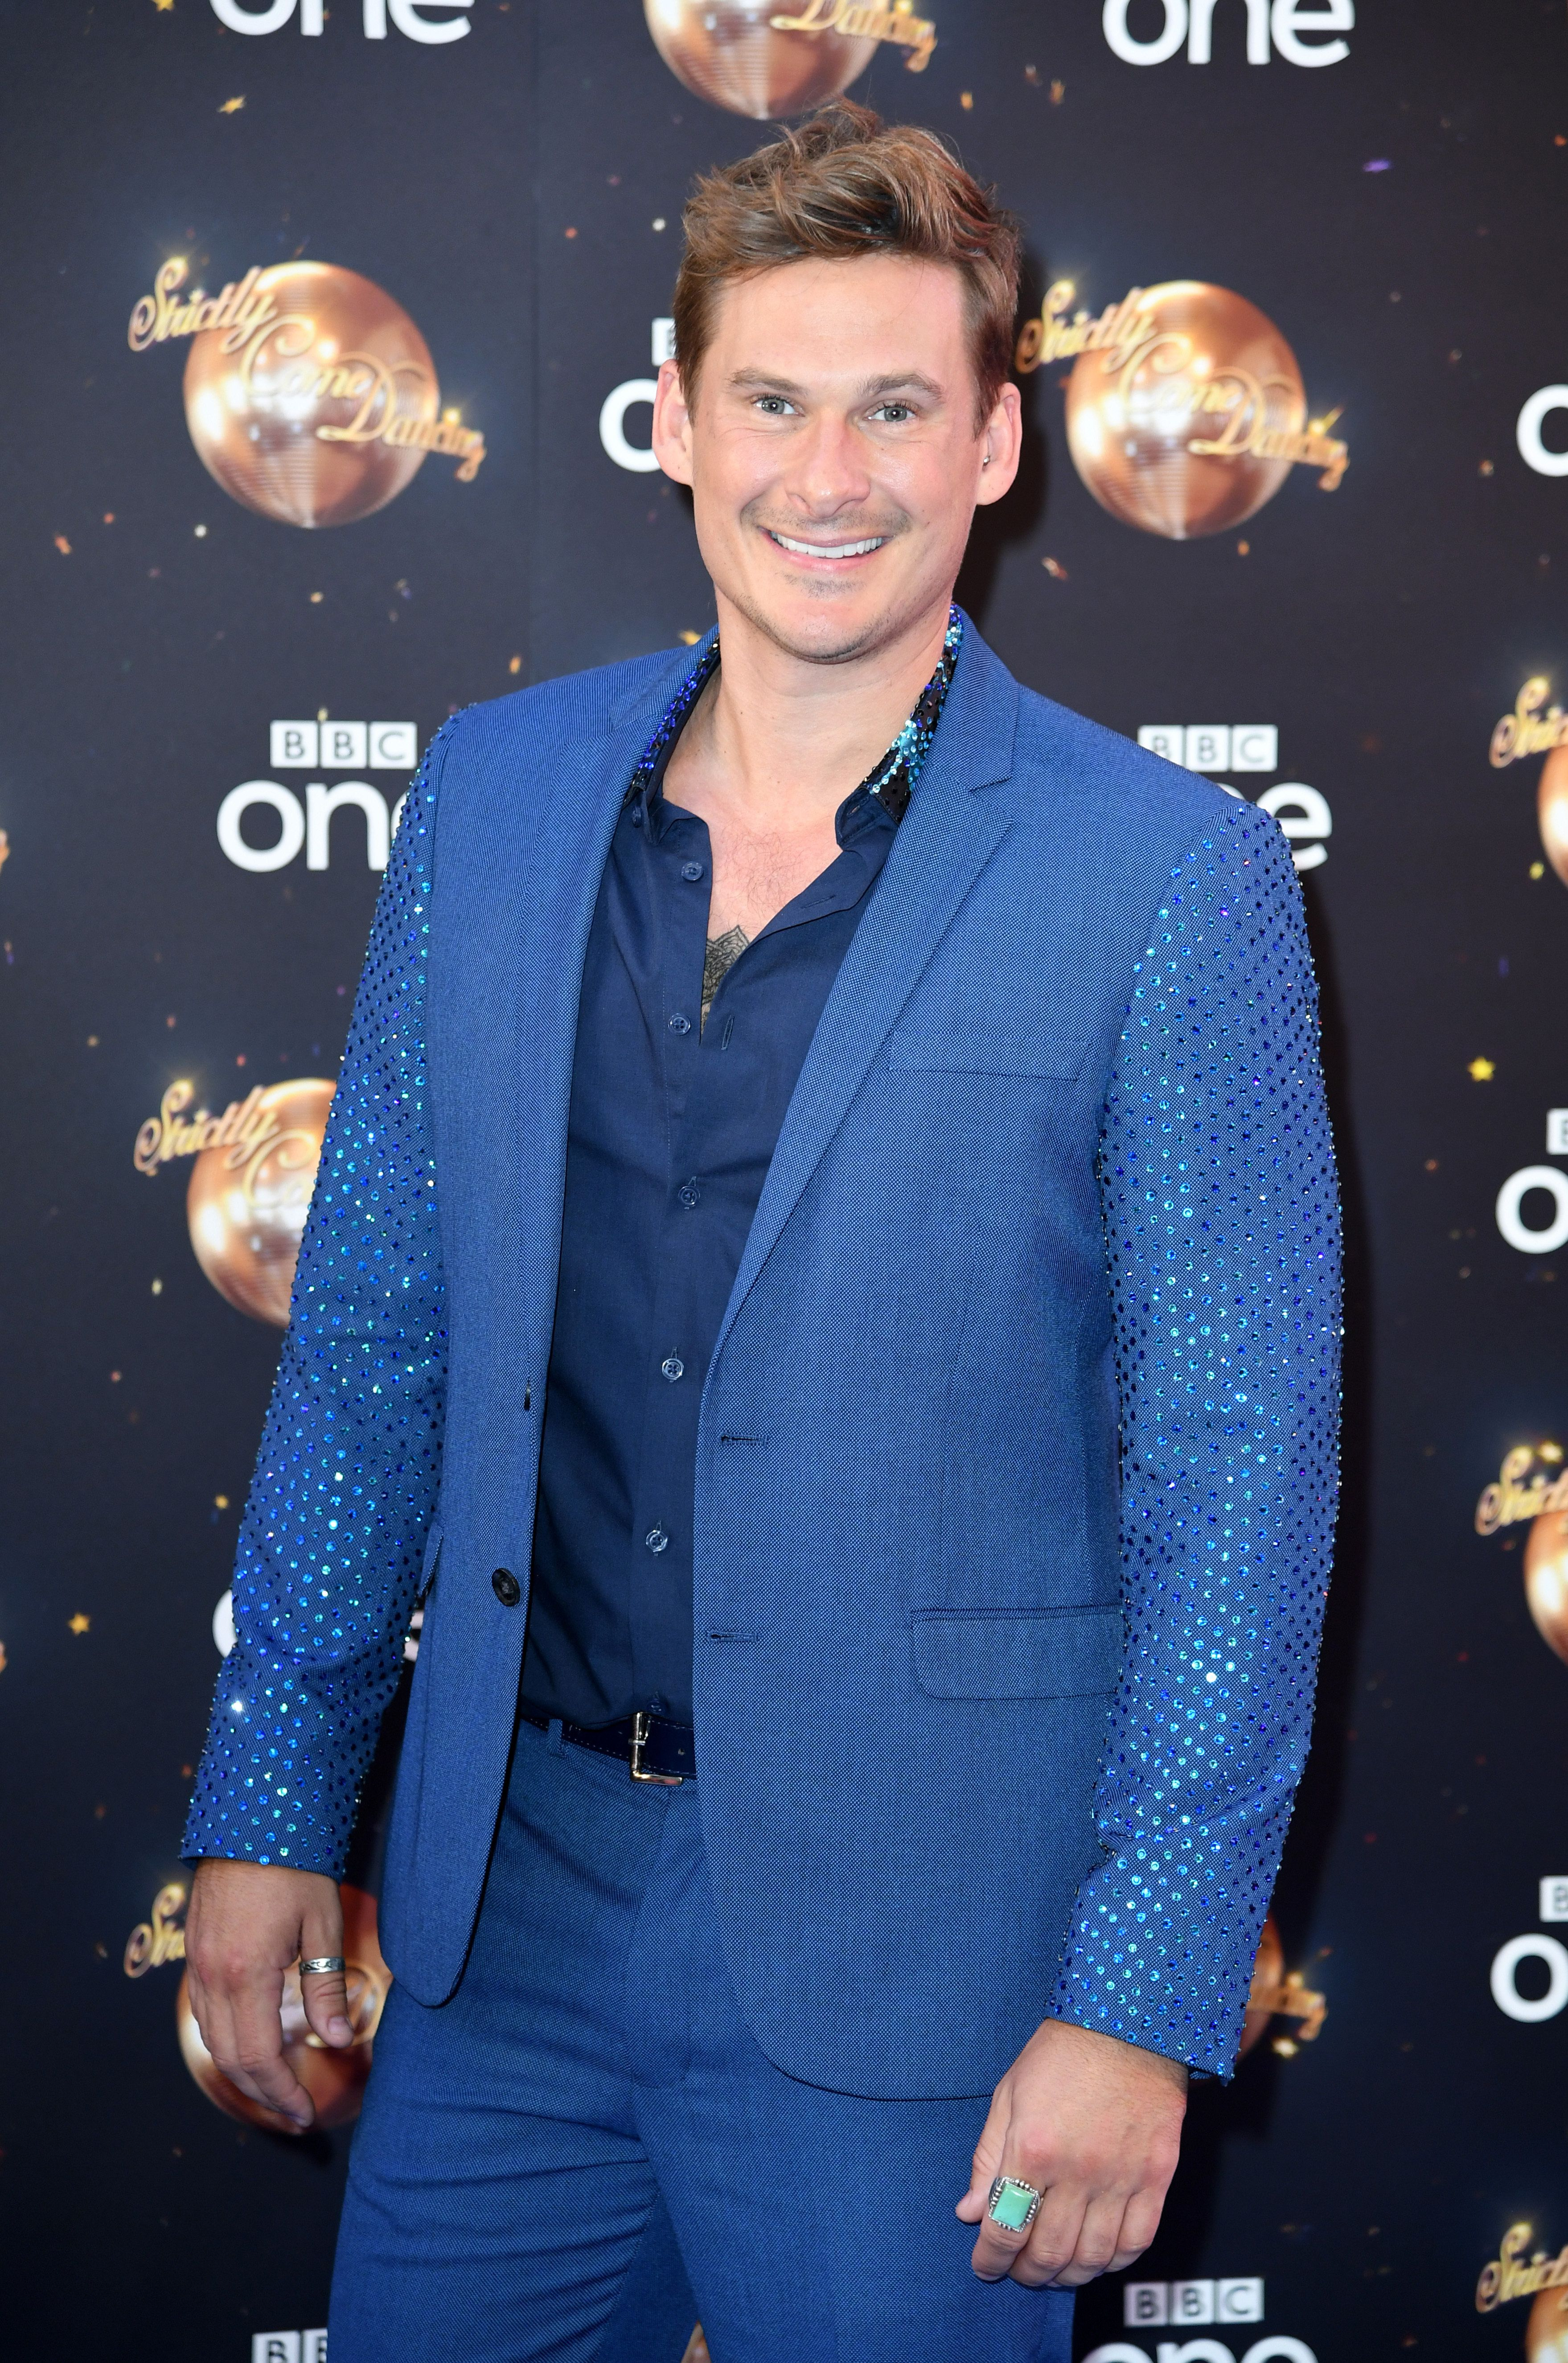 picture Lee Ryan, Westlife Win Awards For Being Worst At Music